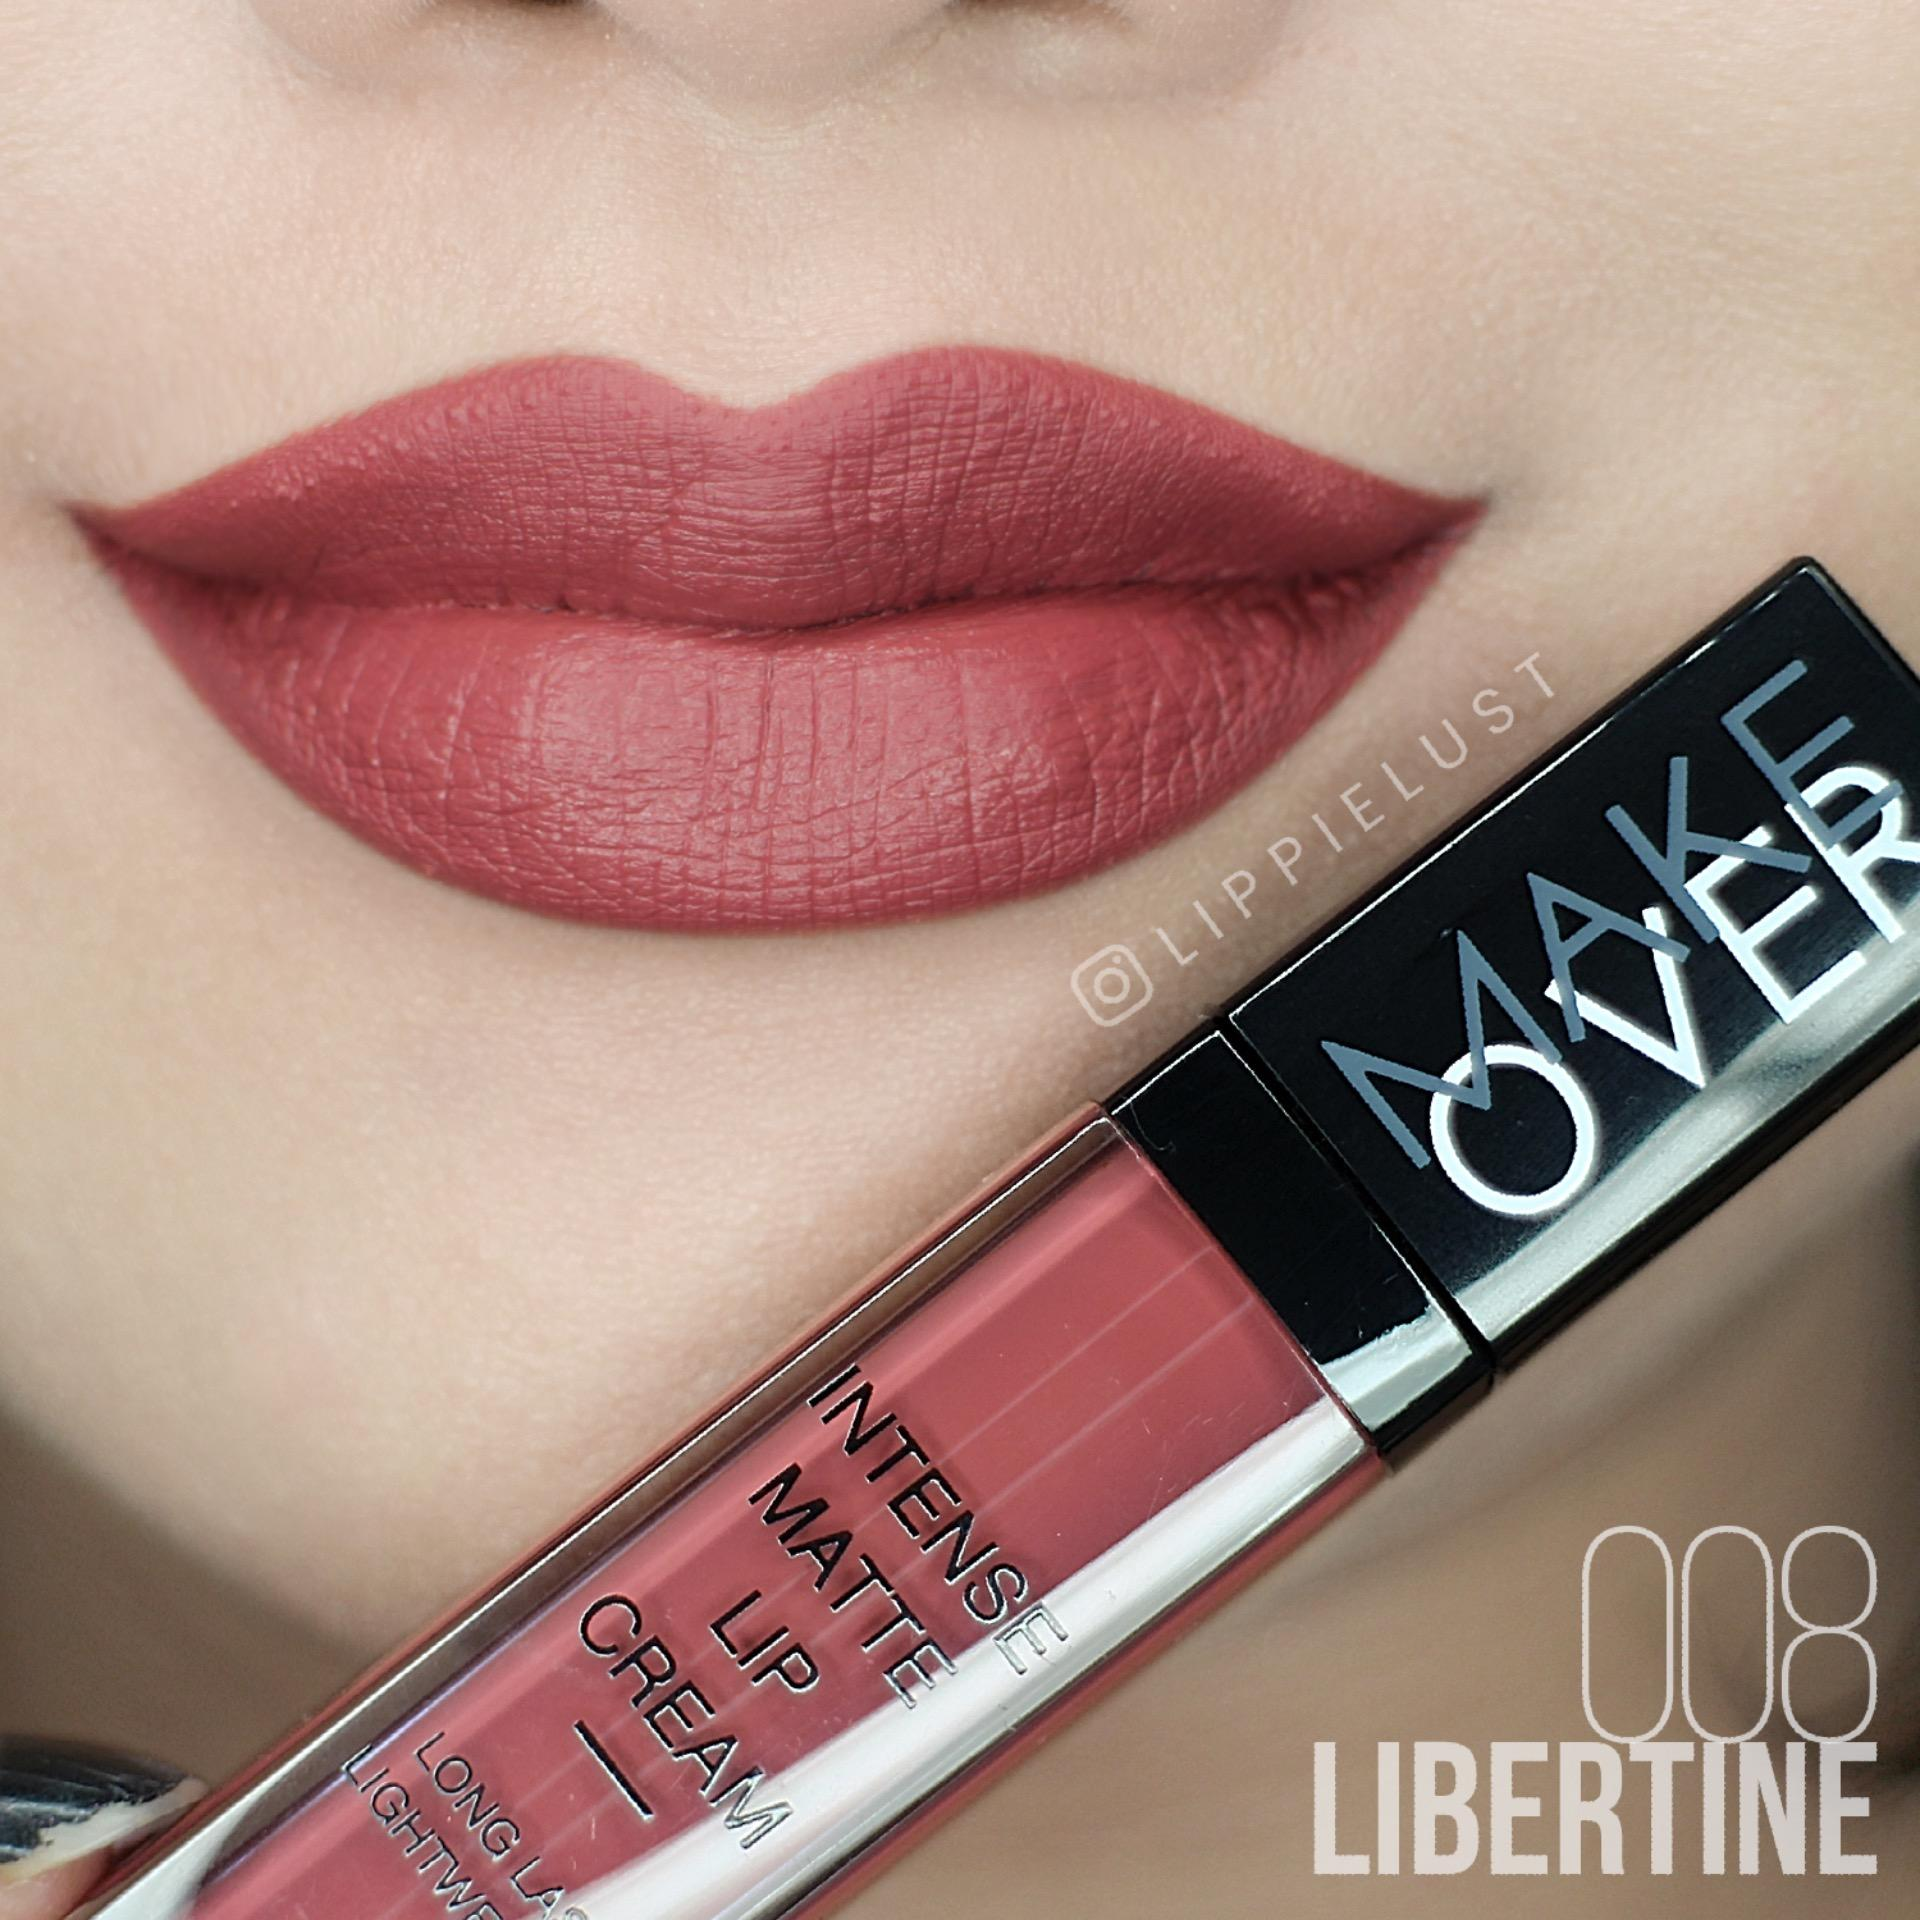 Diskon Make Over Intense Matte Lip Cream 08 Libertine Make Over Di North Sumatra